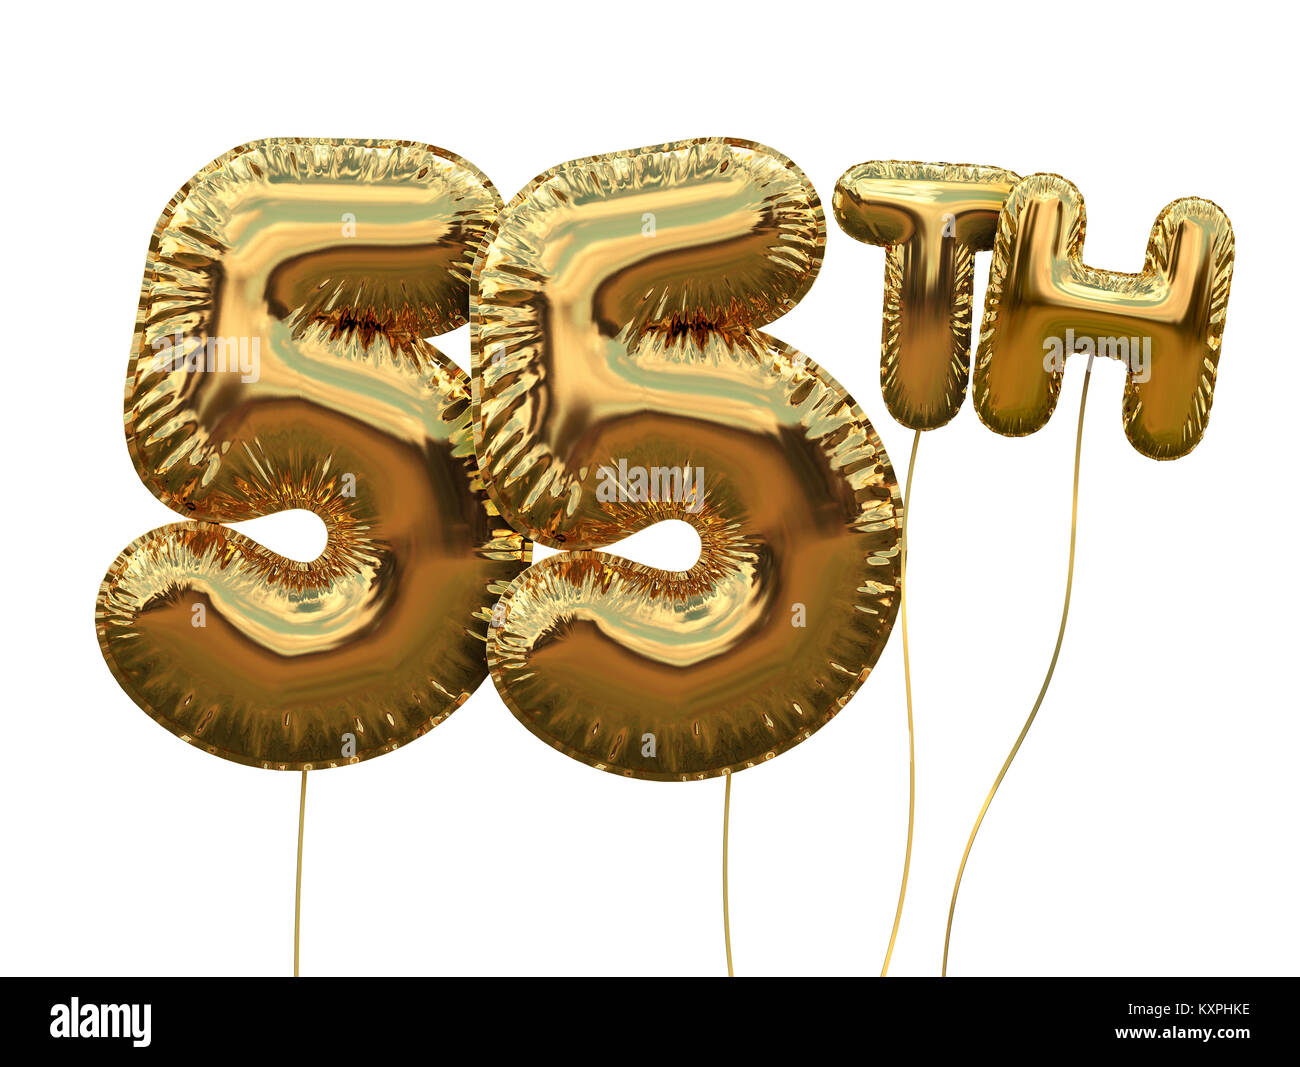 Gold Number 55 Foil Birthday Balloon Isolated On White Golden Party